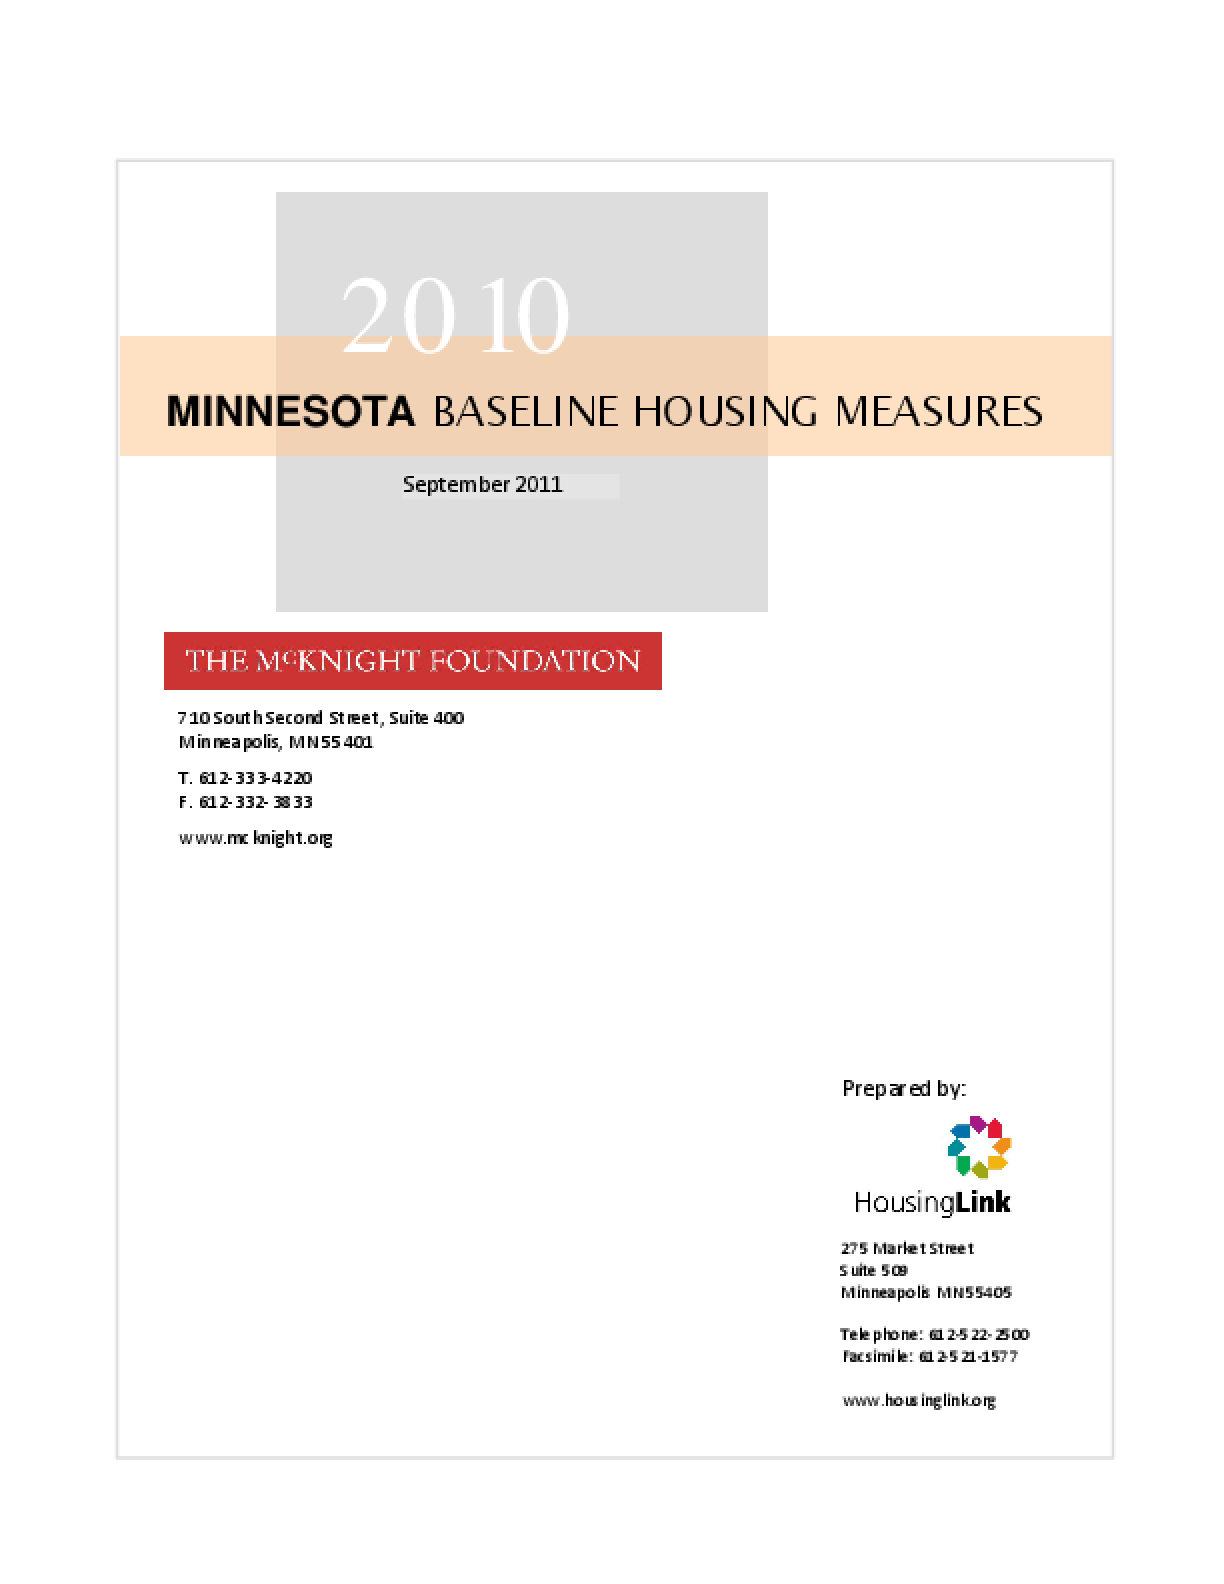 2010 Minnesota Baseline Housing Measures